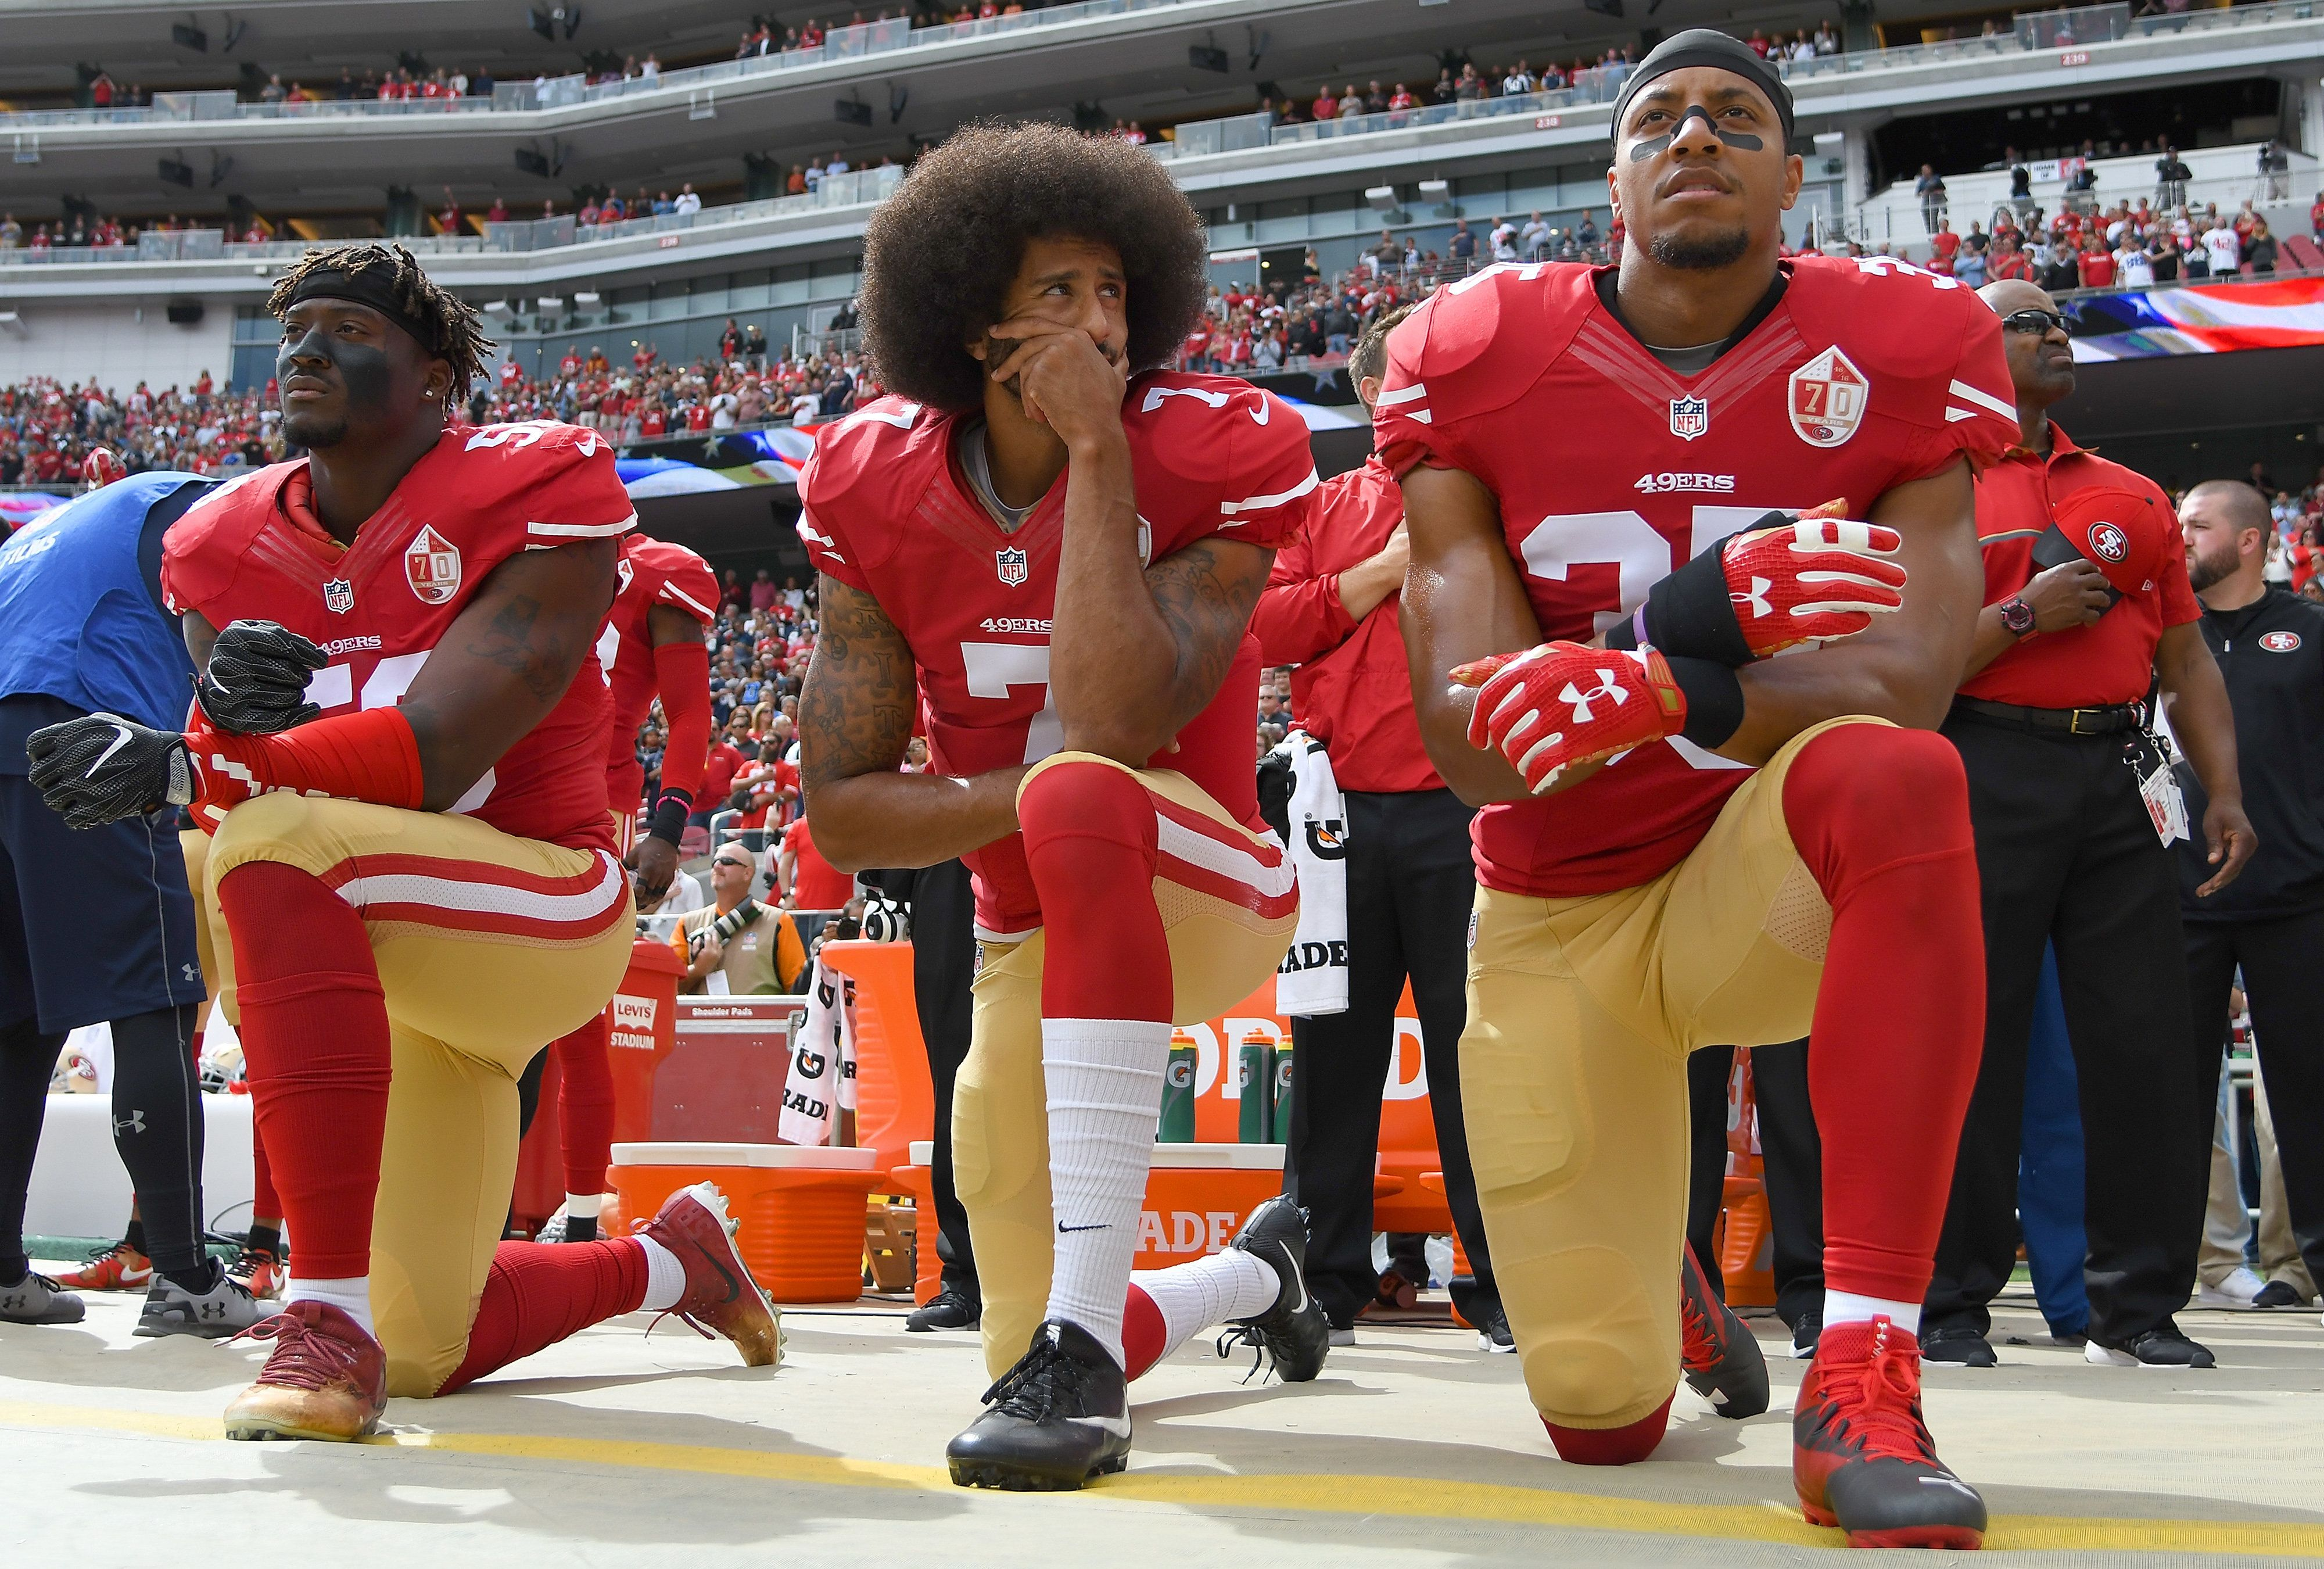 Kaepernick (center), pictured kneeling before a game on Oct. 2, has reportedly decided to stand for the anthem next season.